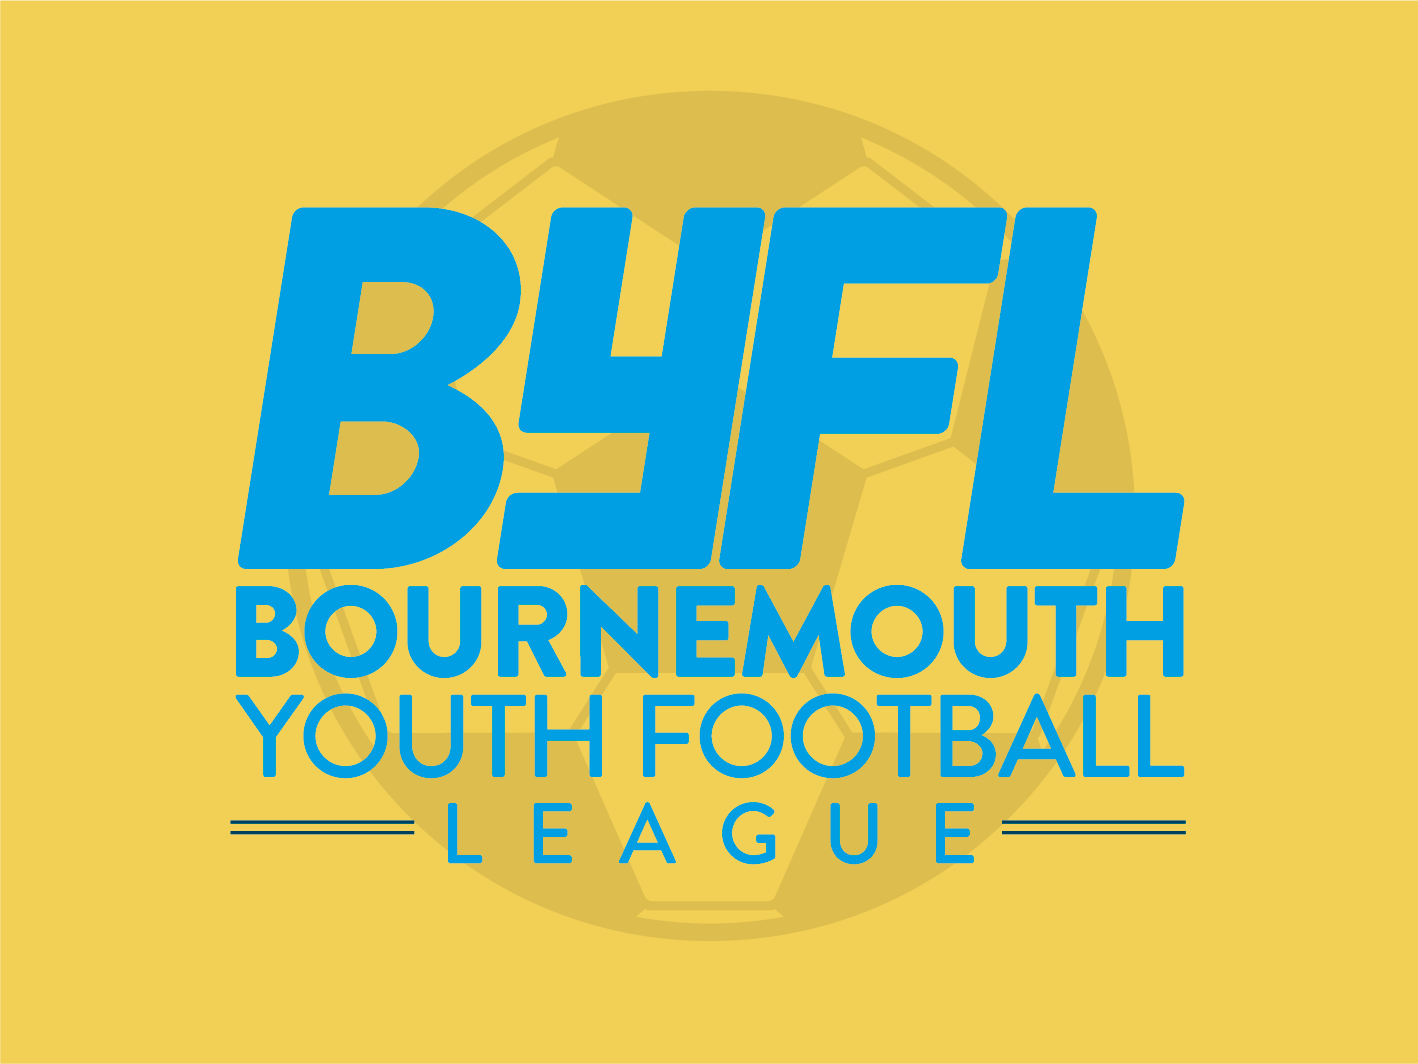 Bournemouth Youth Football League